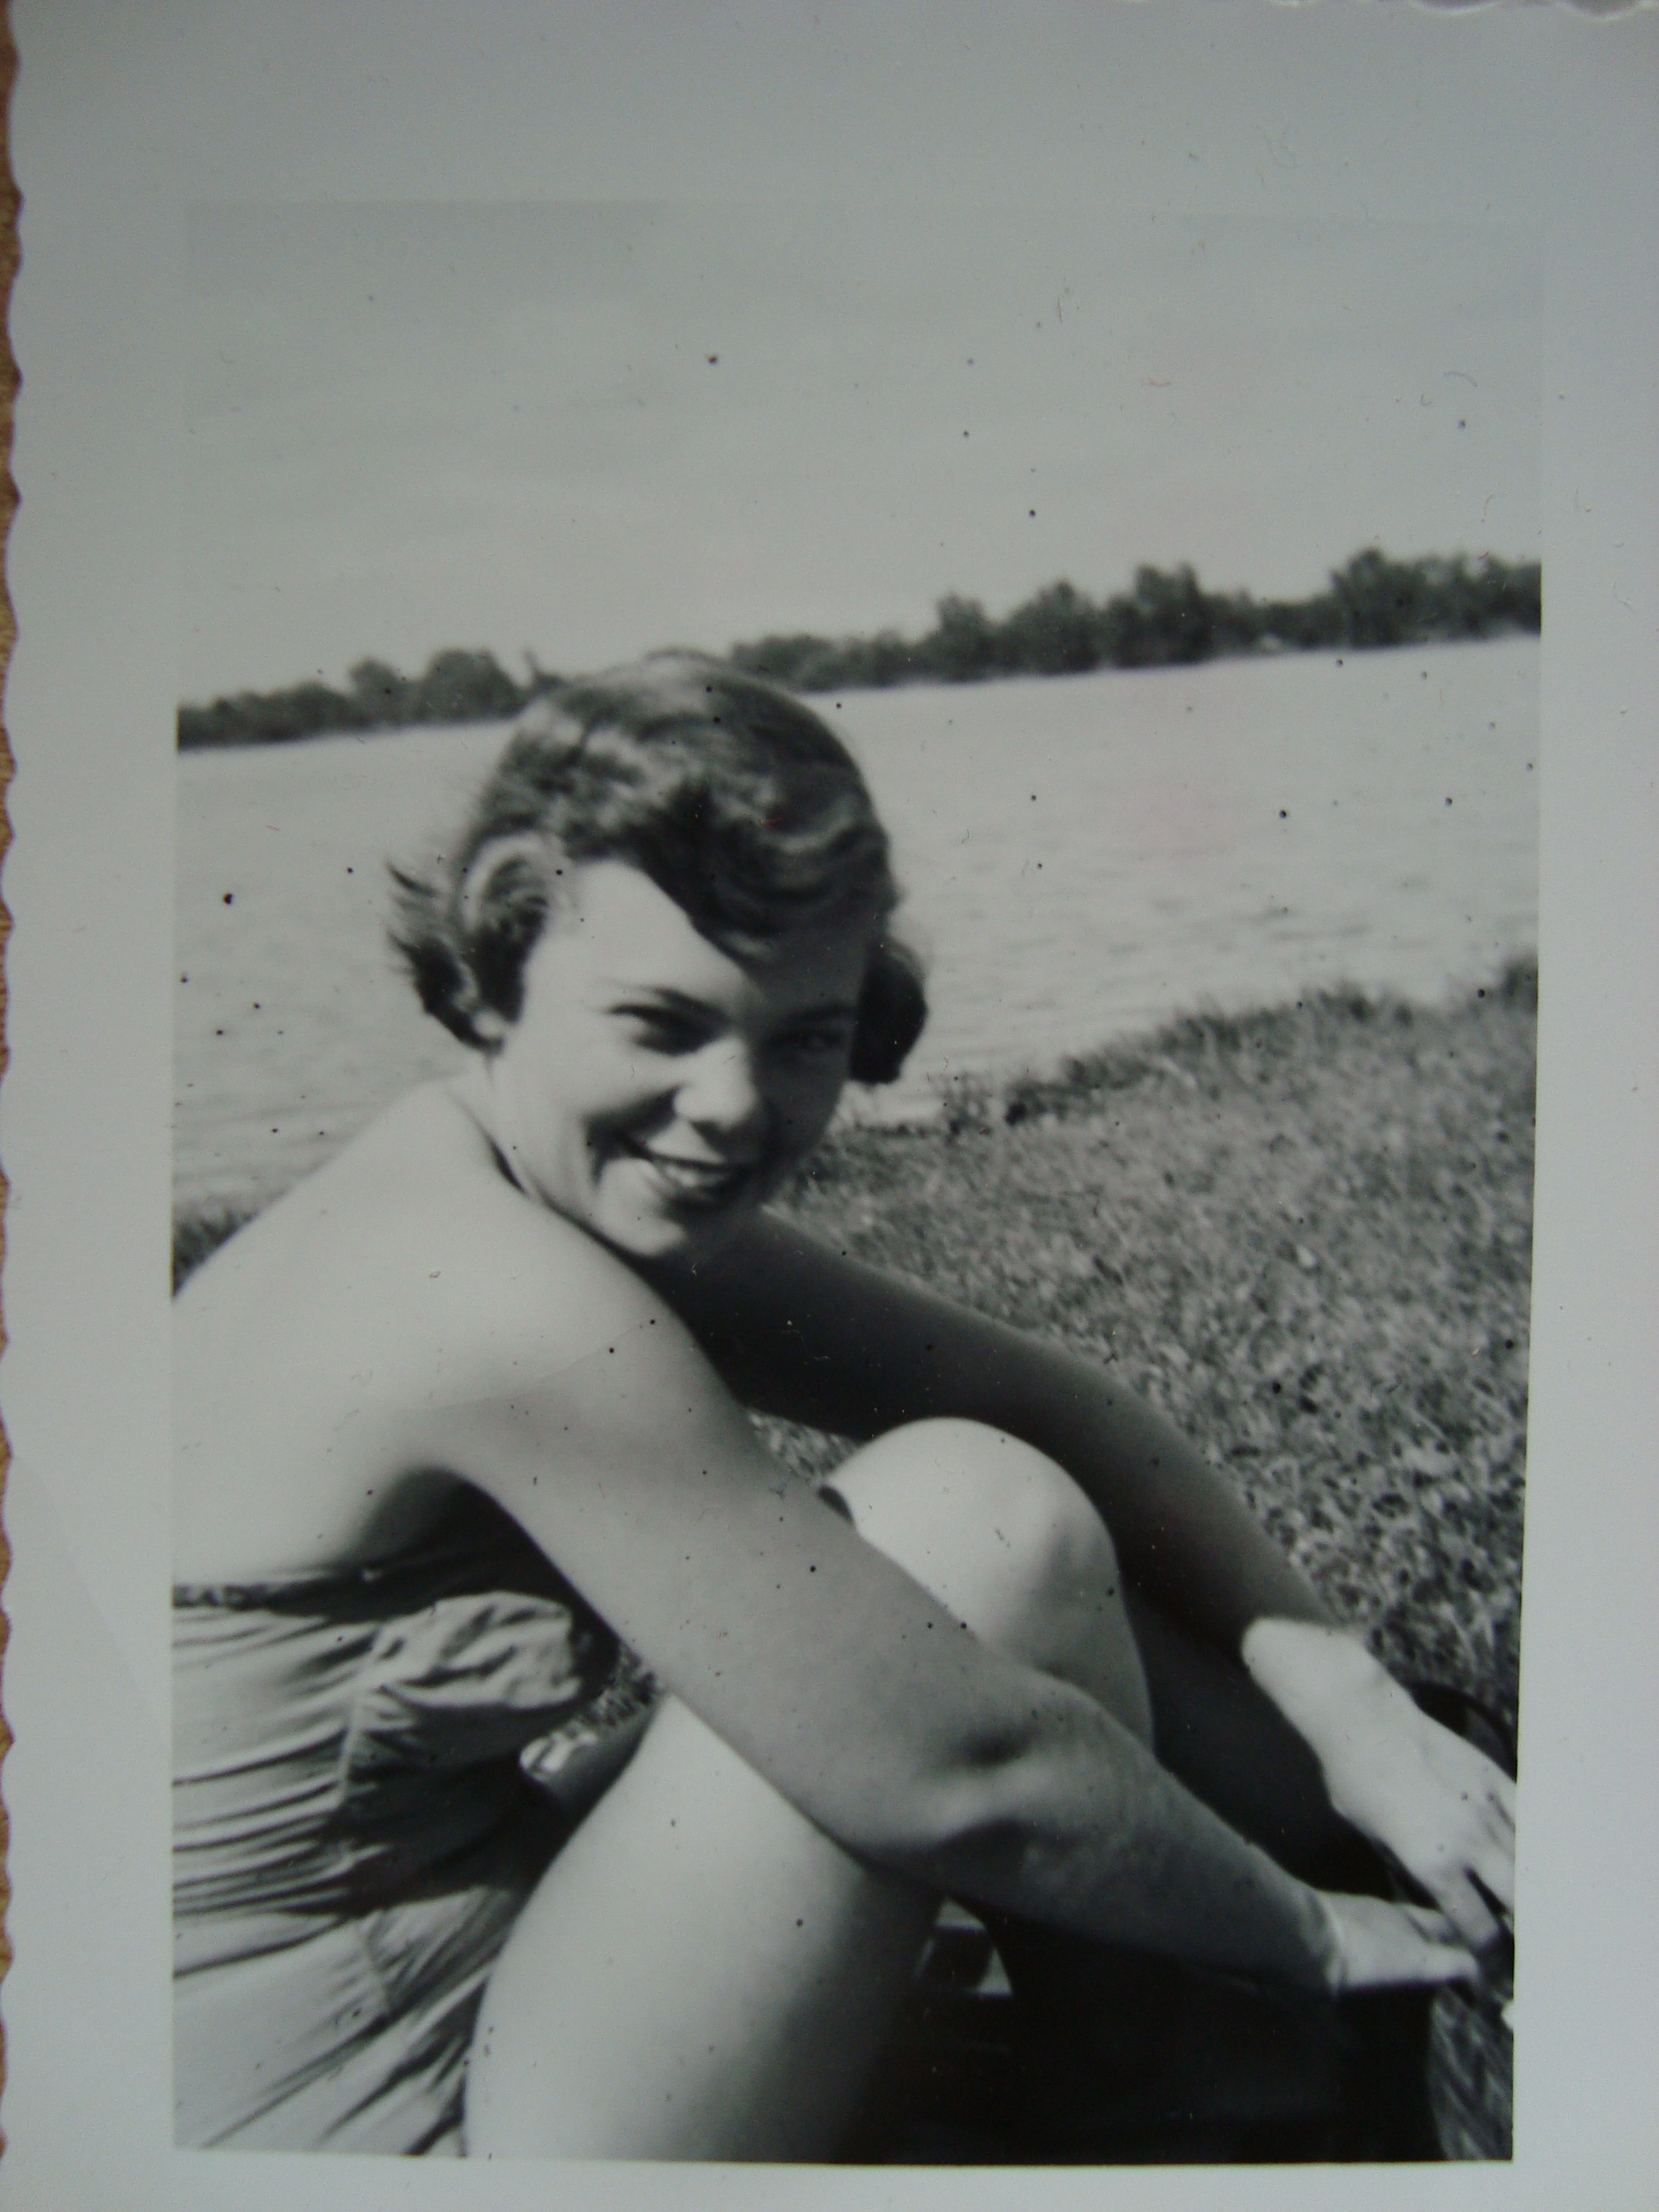 My mom having a good time by a lake in Minnesota in the early 1950s.